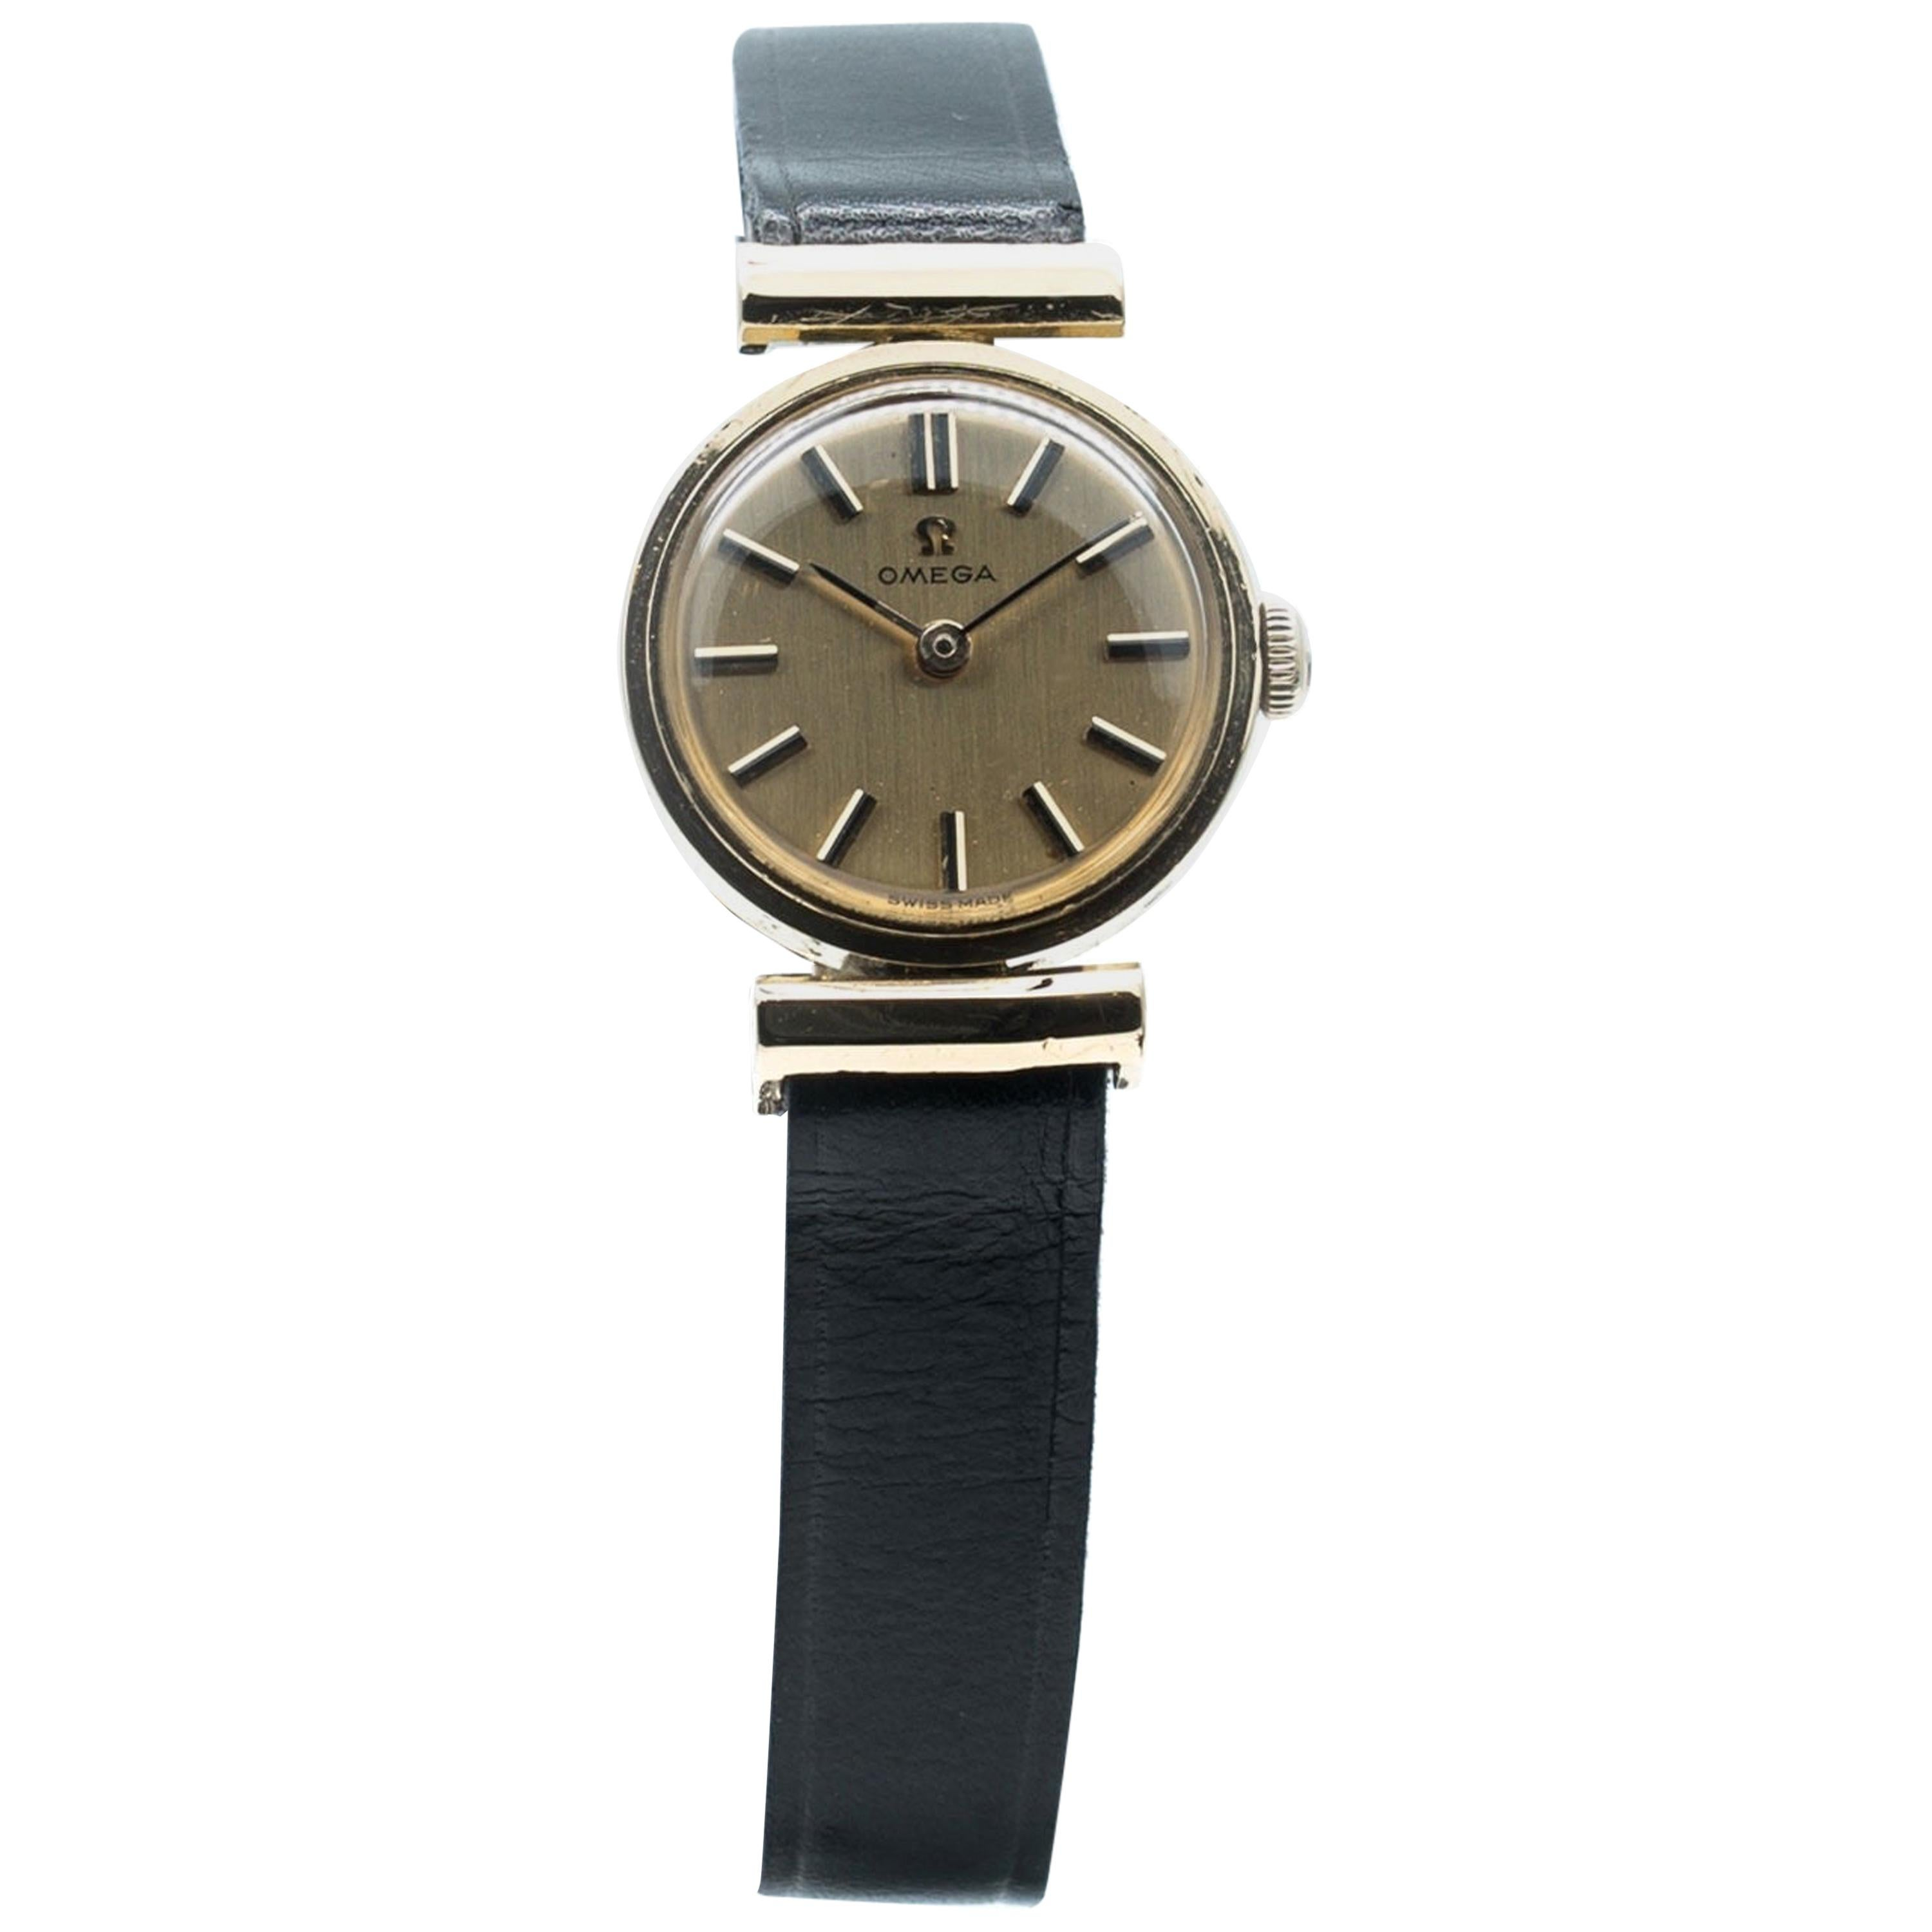 Manual Ladies Omega Gold Watch, circa 1960, Swiss Made, Valuated